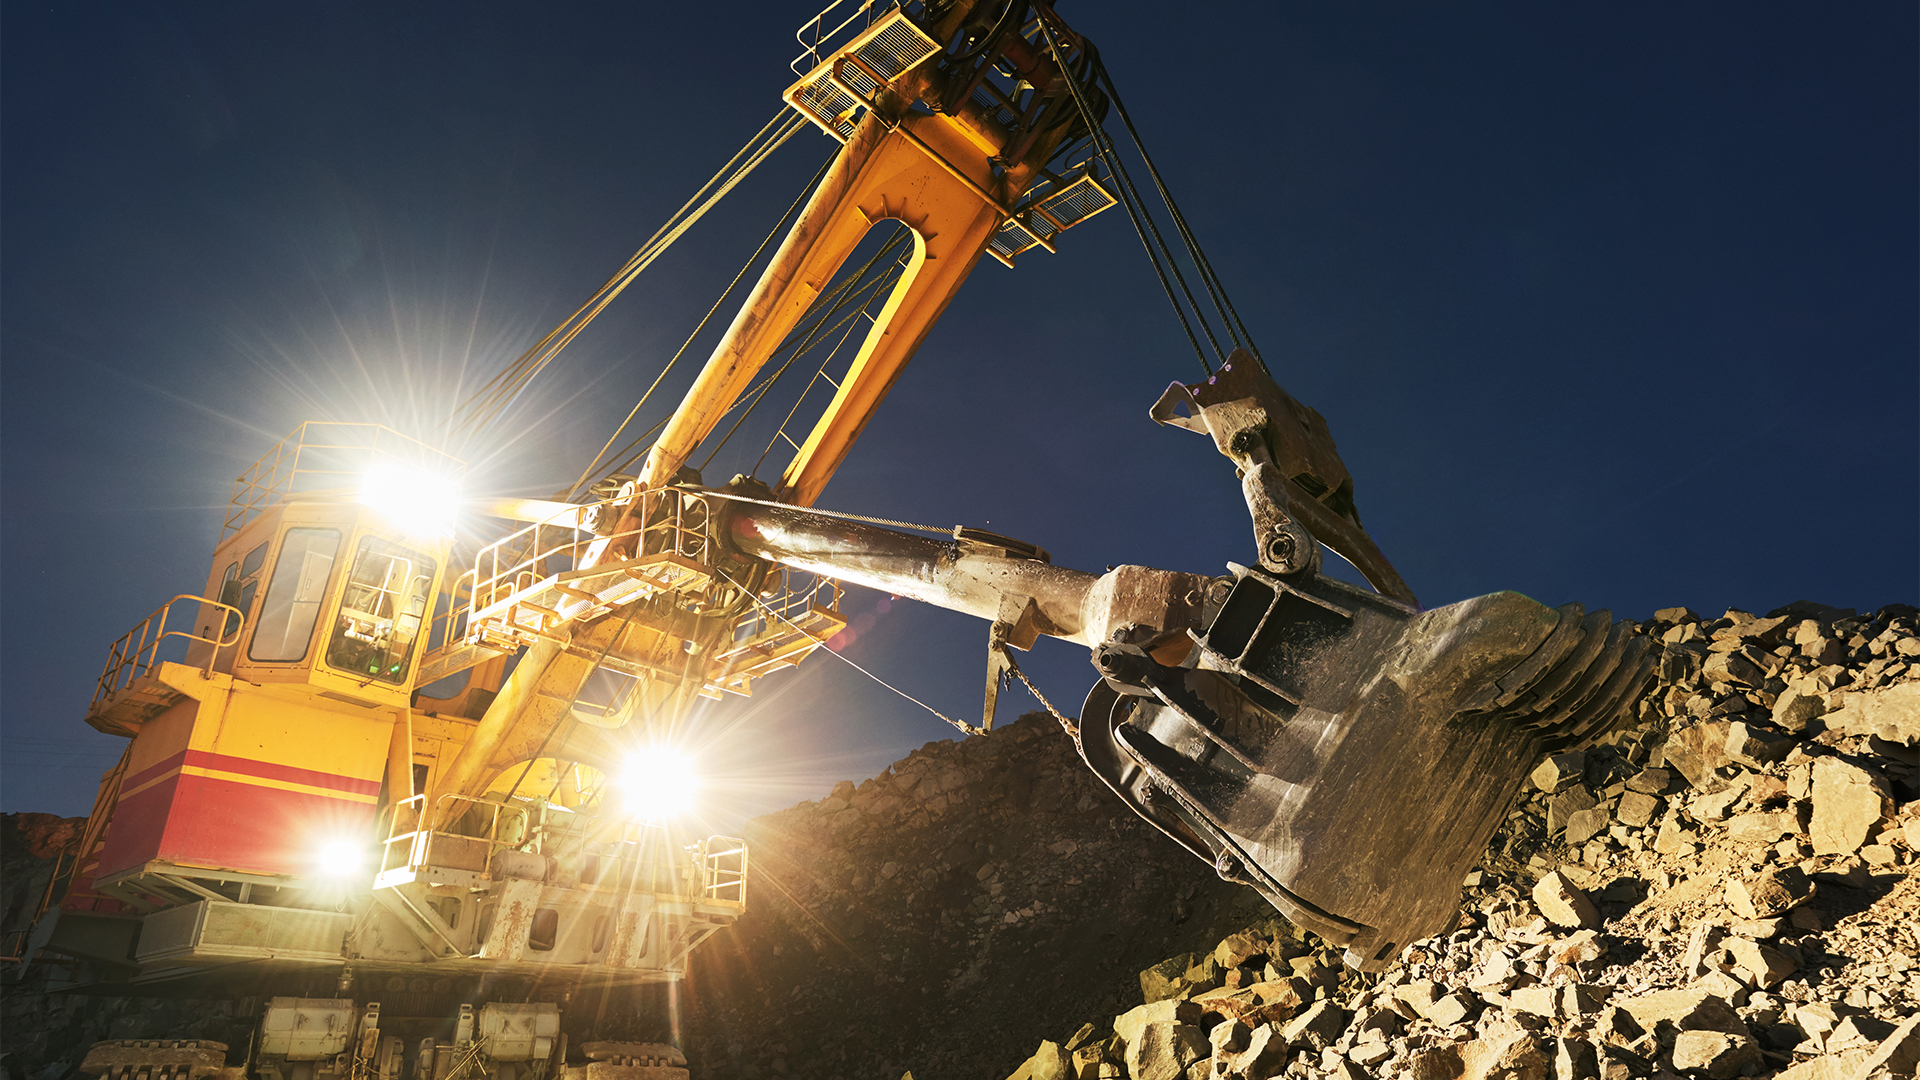 Evolution Mining (ASX:EVN) downgrades production guidance